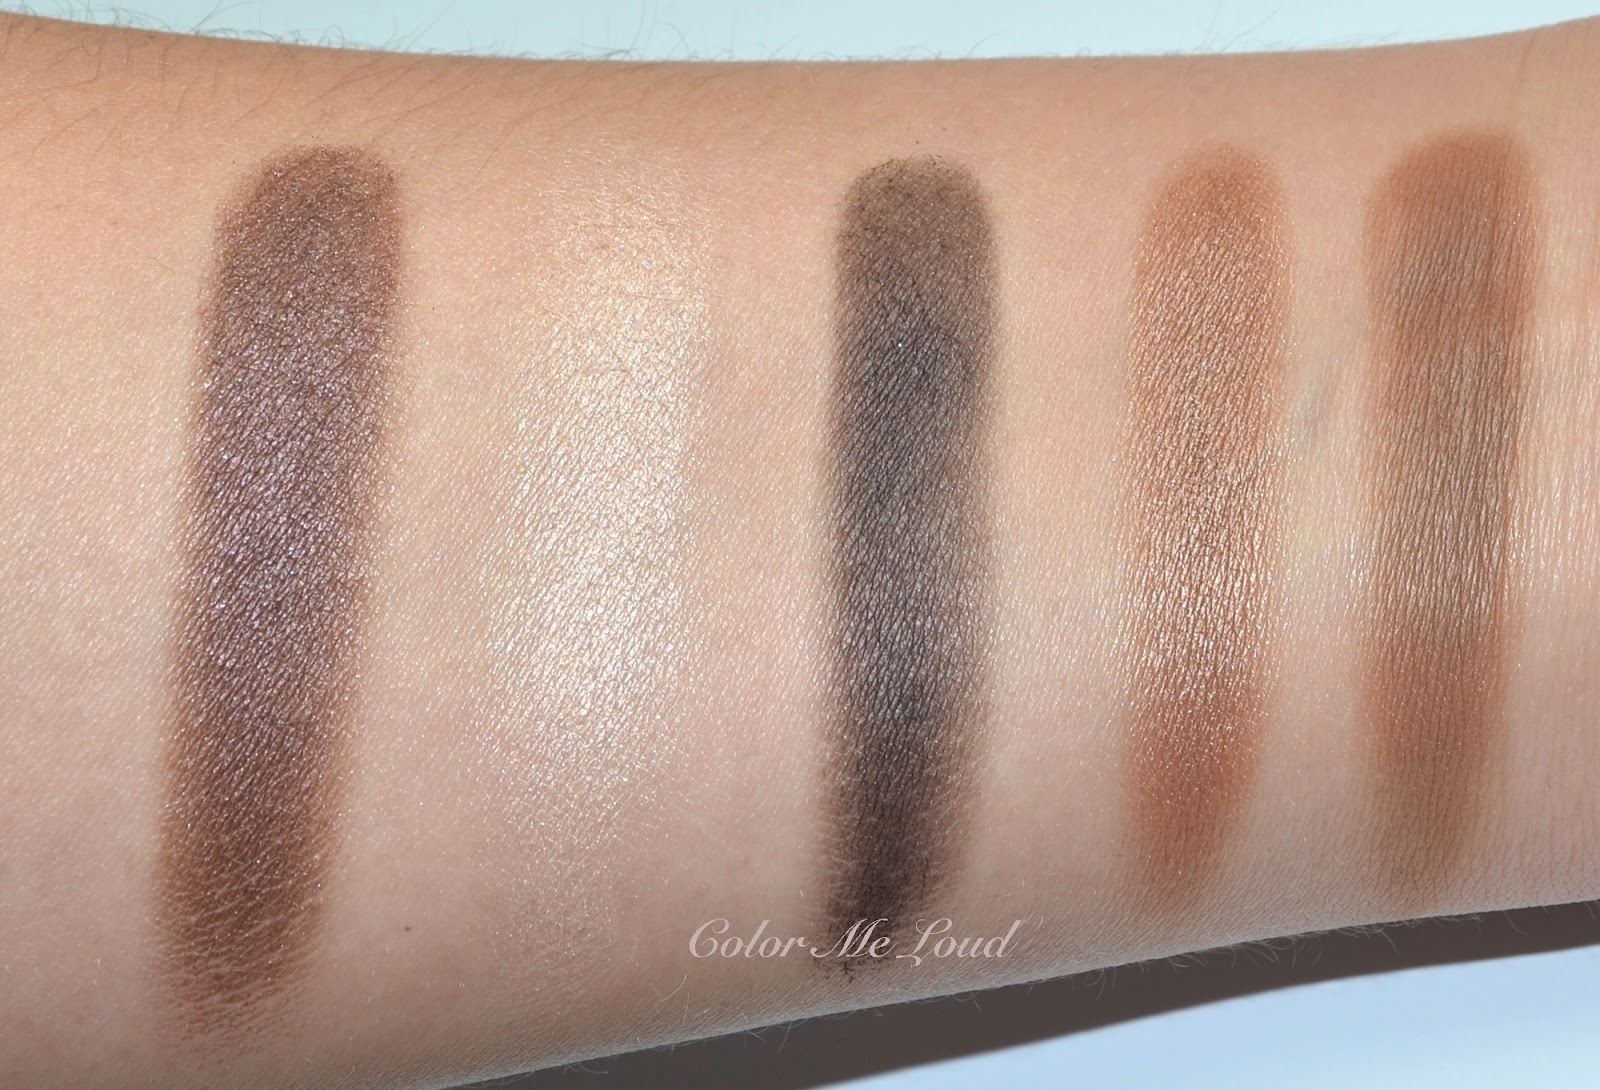 5 Couleurs Eyeshadow Palette - Touch Matte by Dior #10